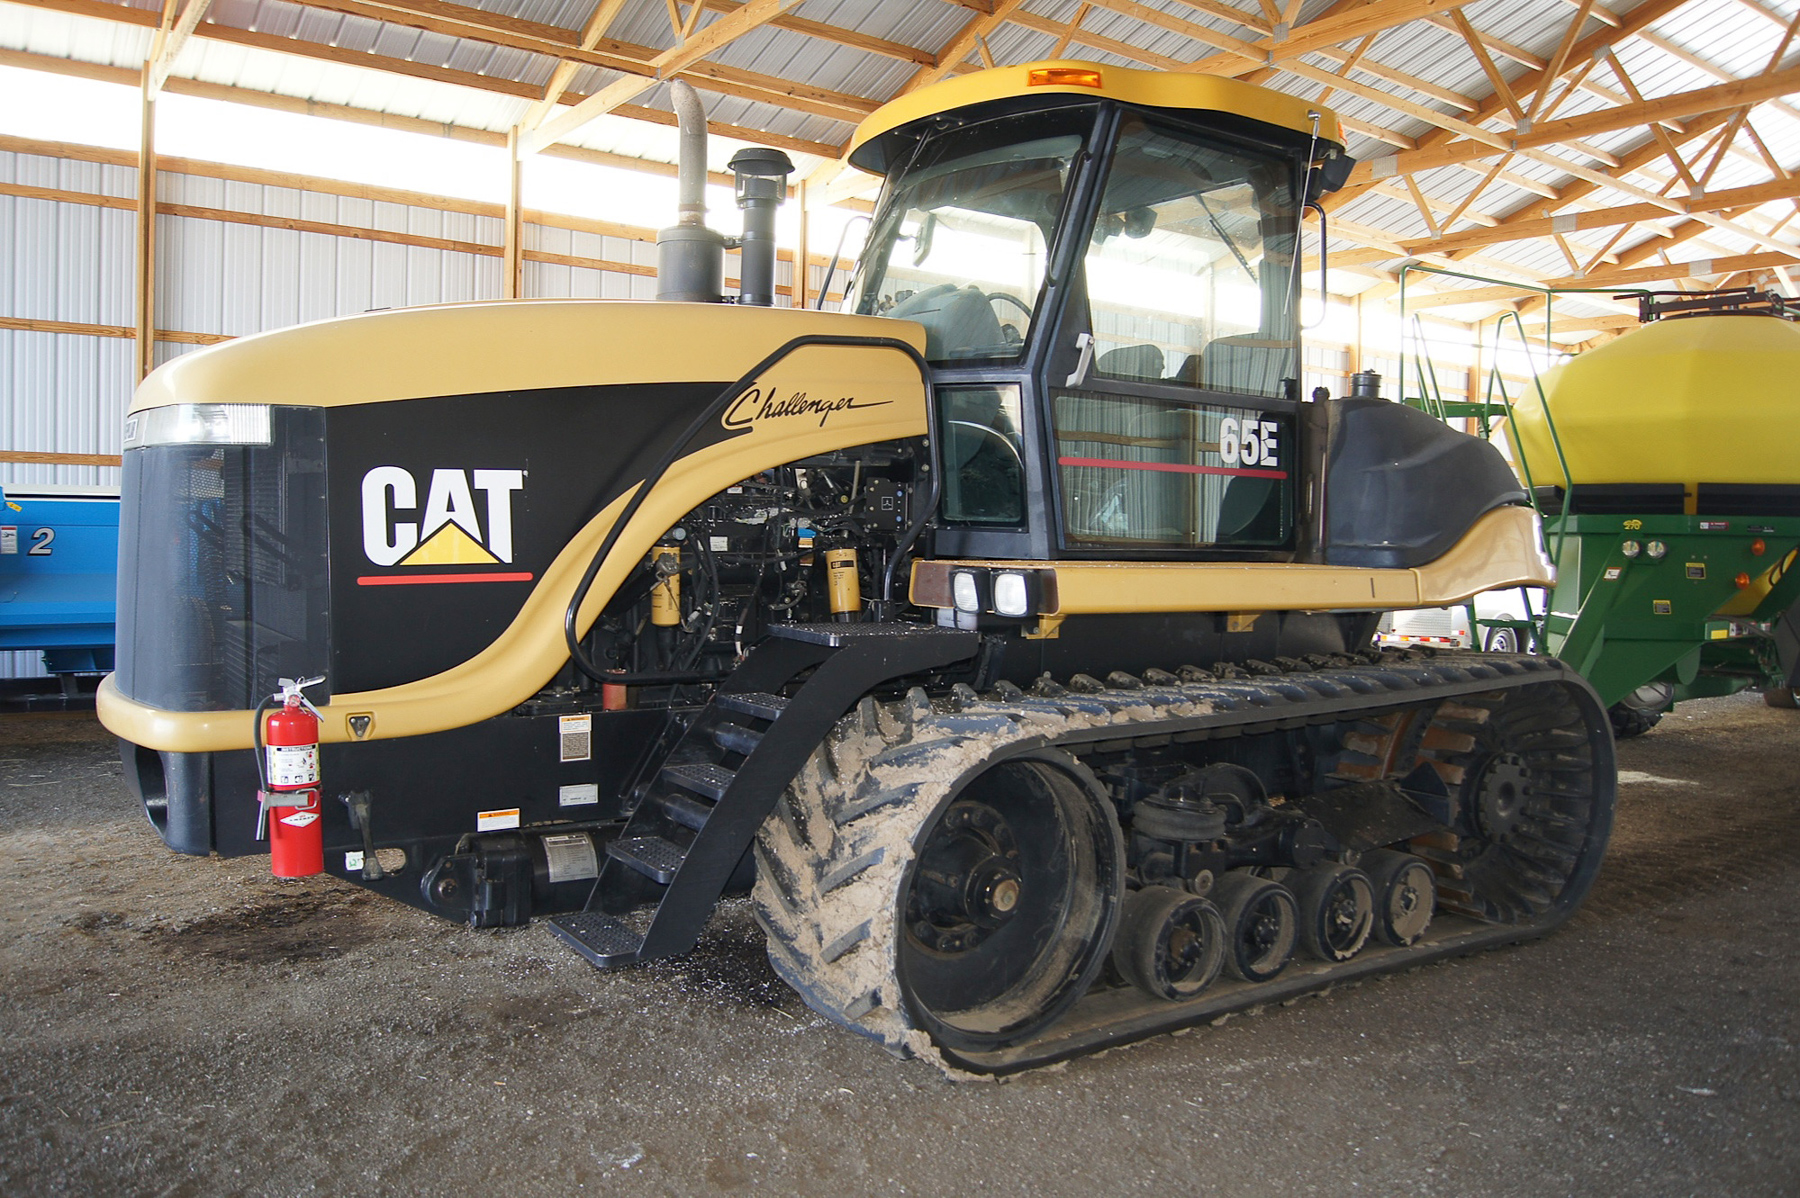 2002 CAT 65E, reck agri, equipment auction, farm equipment, sale, auction, equip